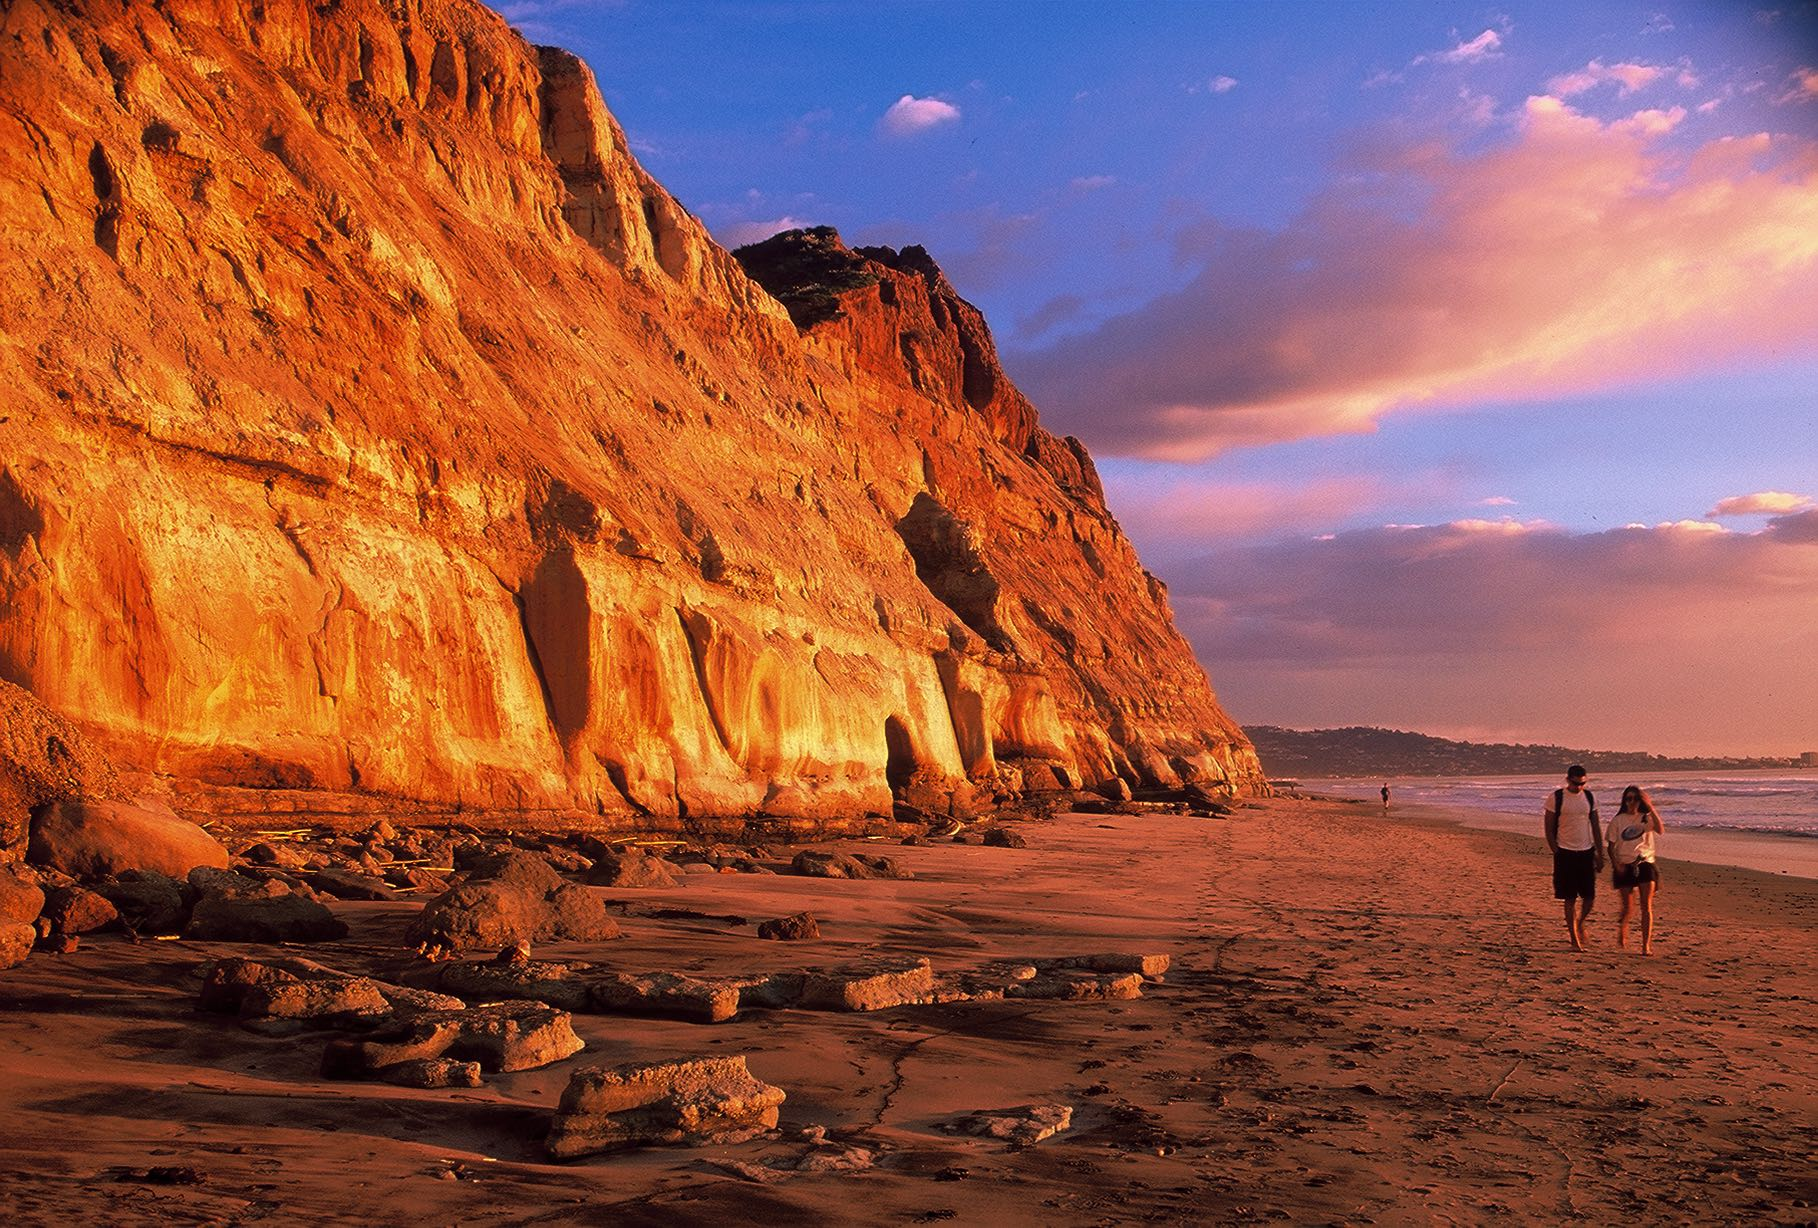 About Time: You Discovered the Best Beaches in California, USA